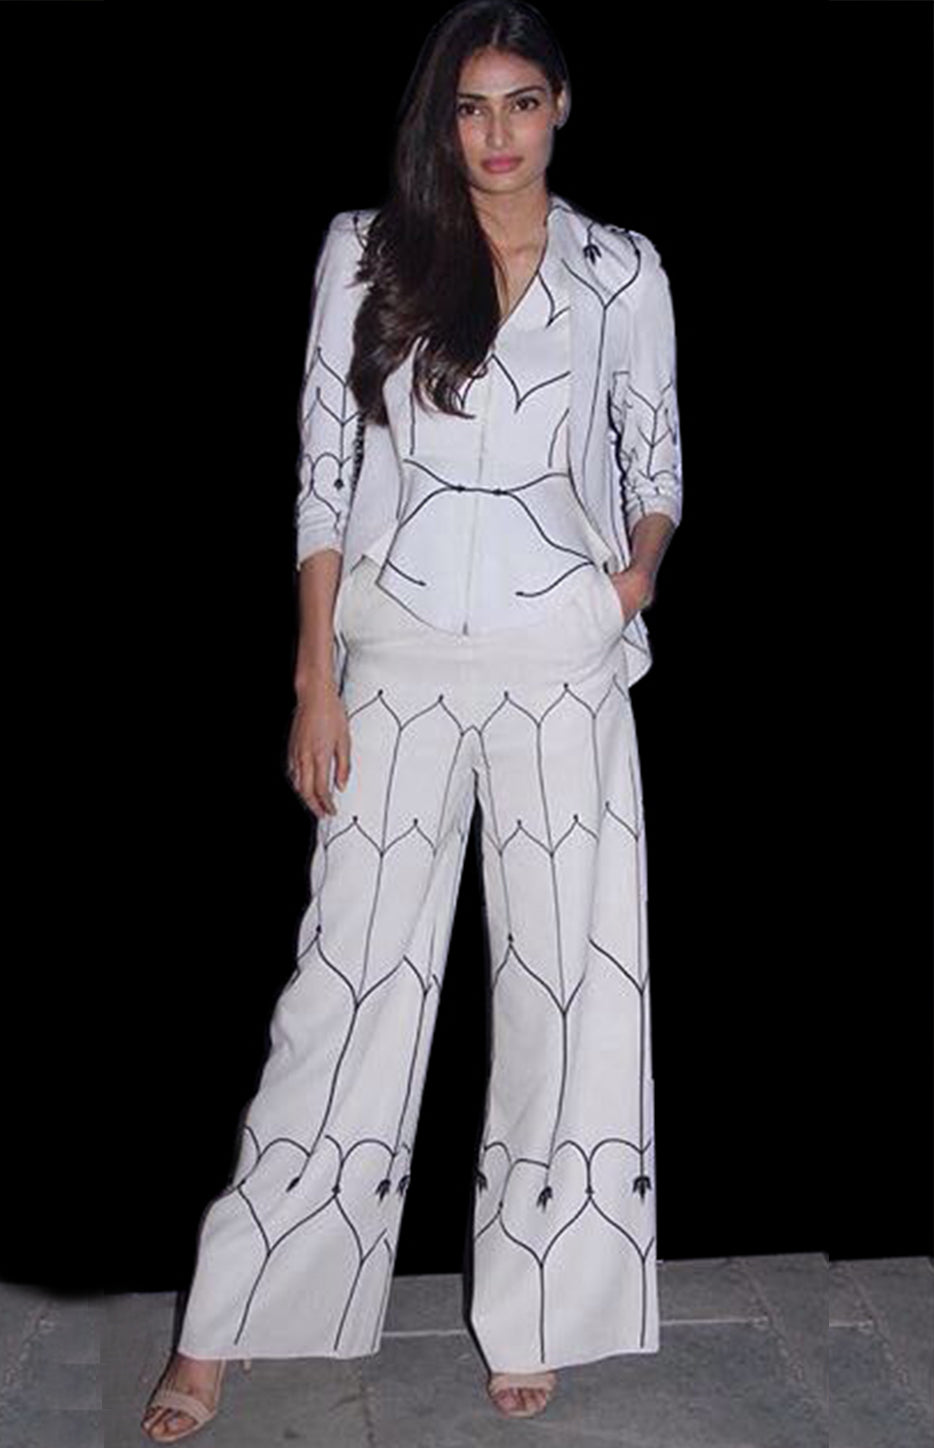 Athiya Shetty Wearing an Ivory printed Jacket and Trouser set